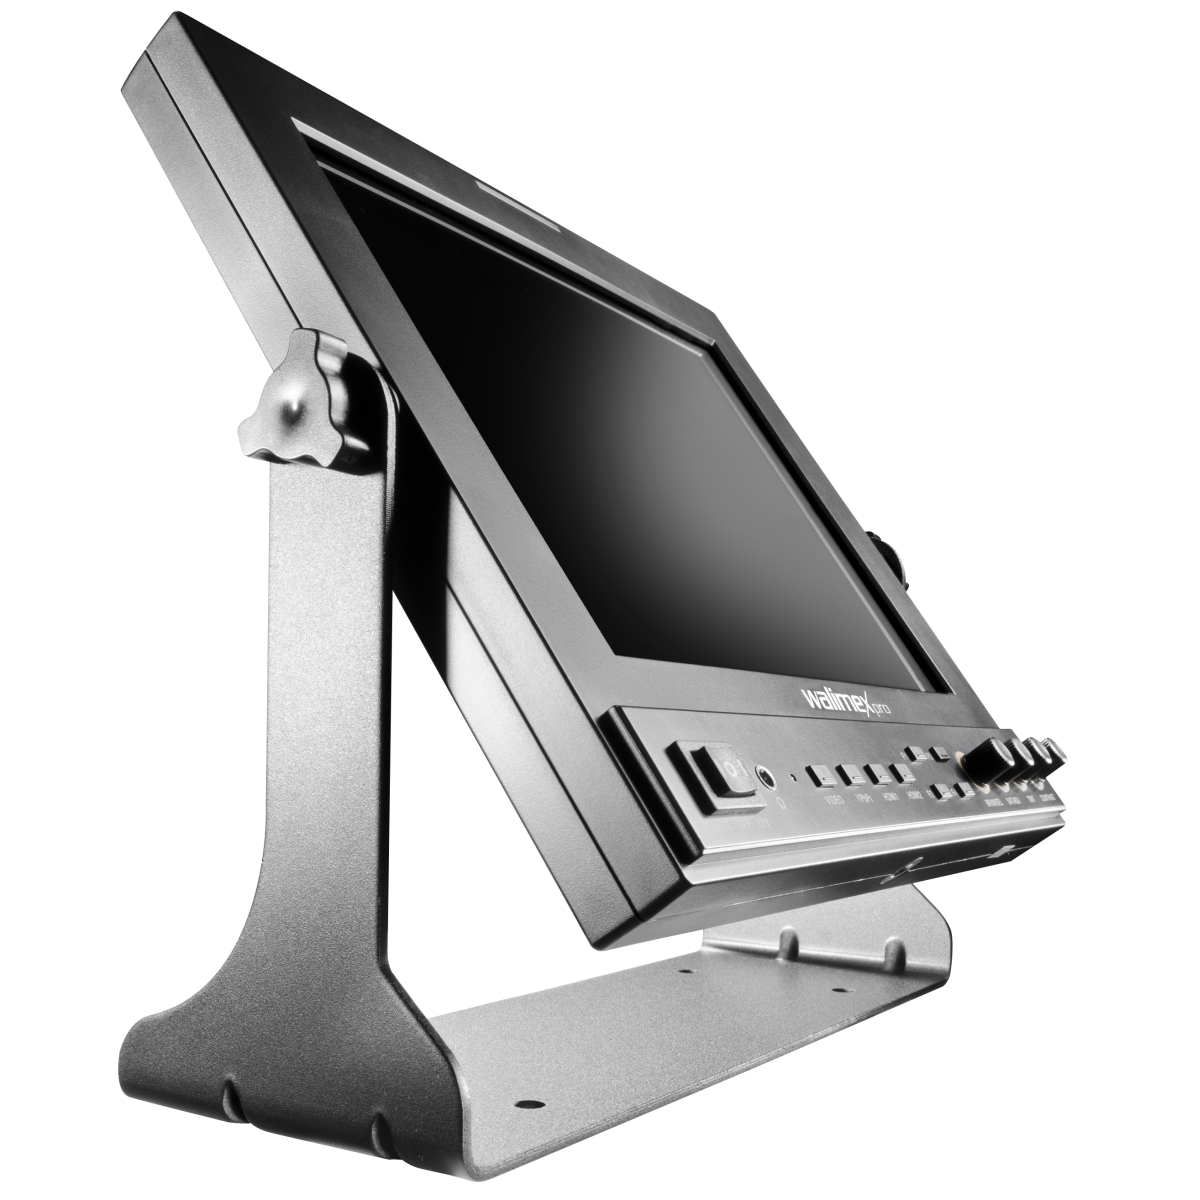 Walimex pro LCD Monitor 24.6 cm Video DSLR